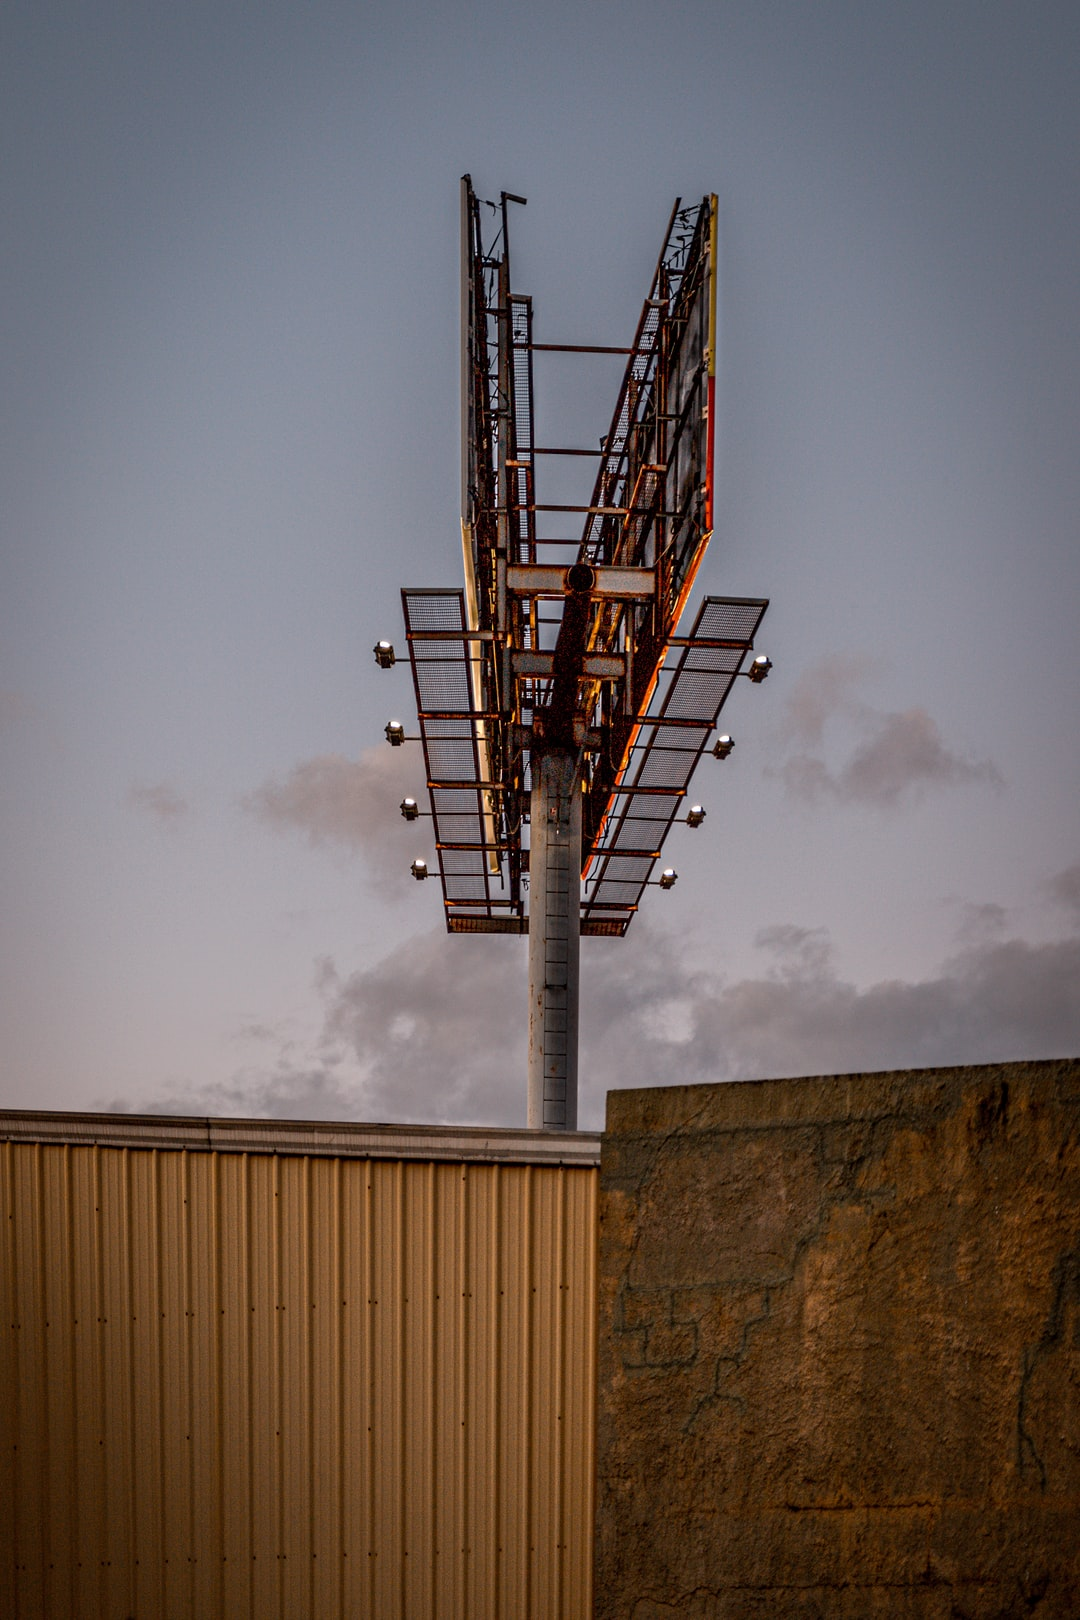 Looking up at an outdoor board and warehouse at sunset with empty sky in background.